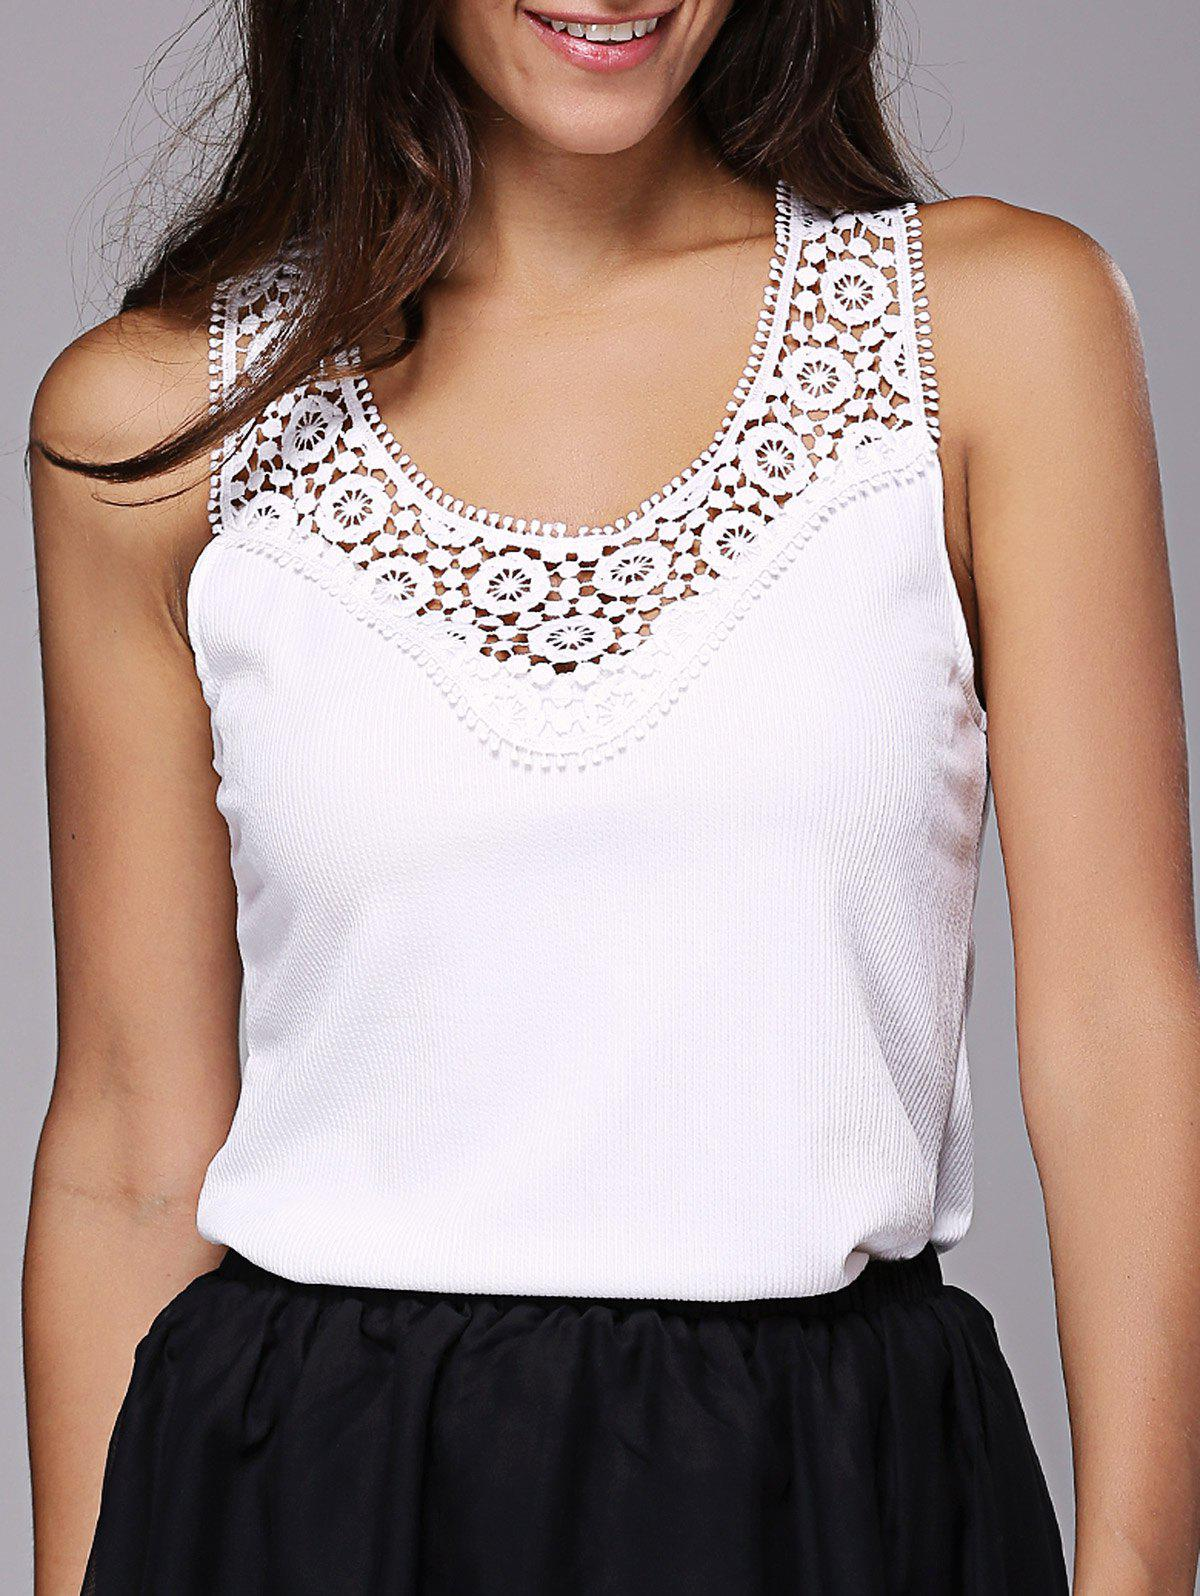 Stylish Laced  Racerback Tank Top For Women - XL WHITE